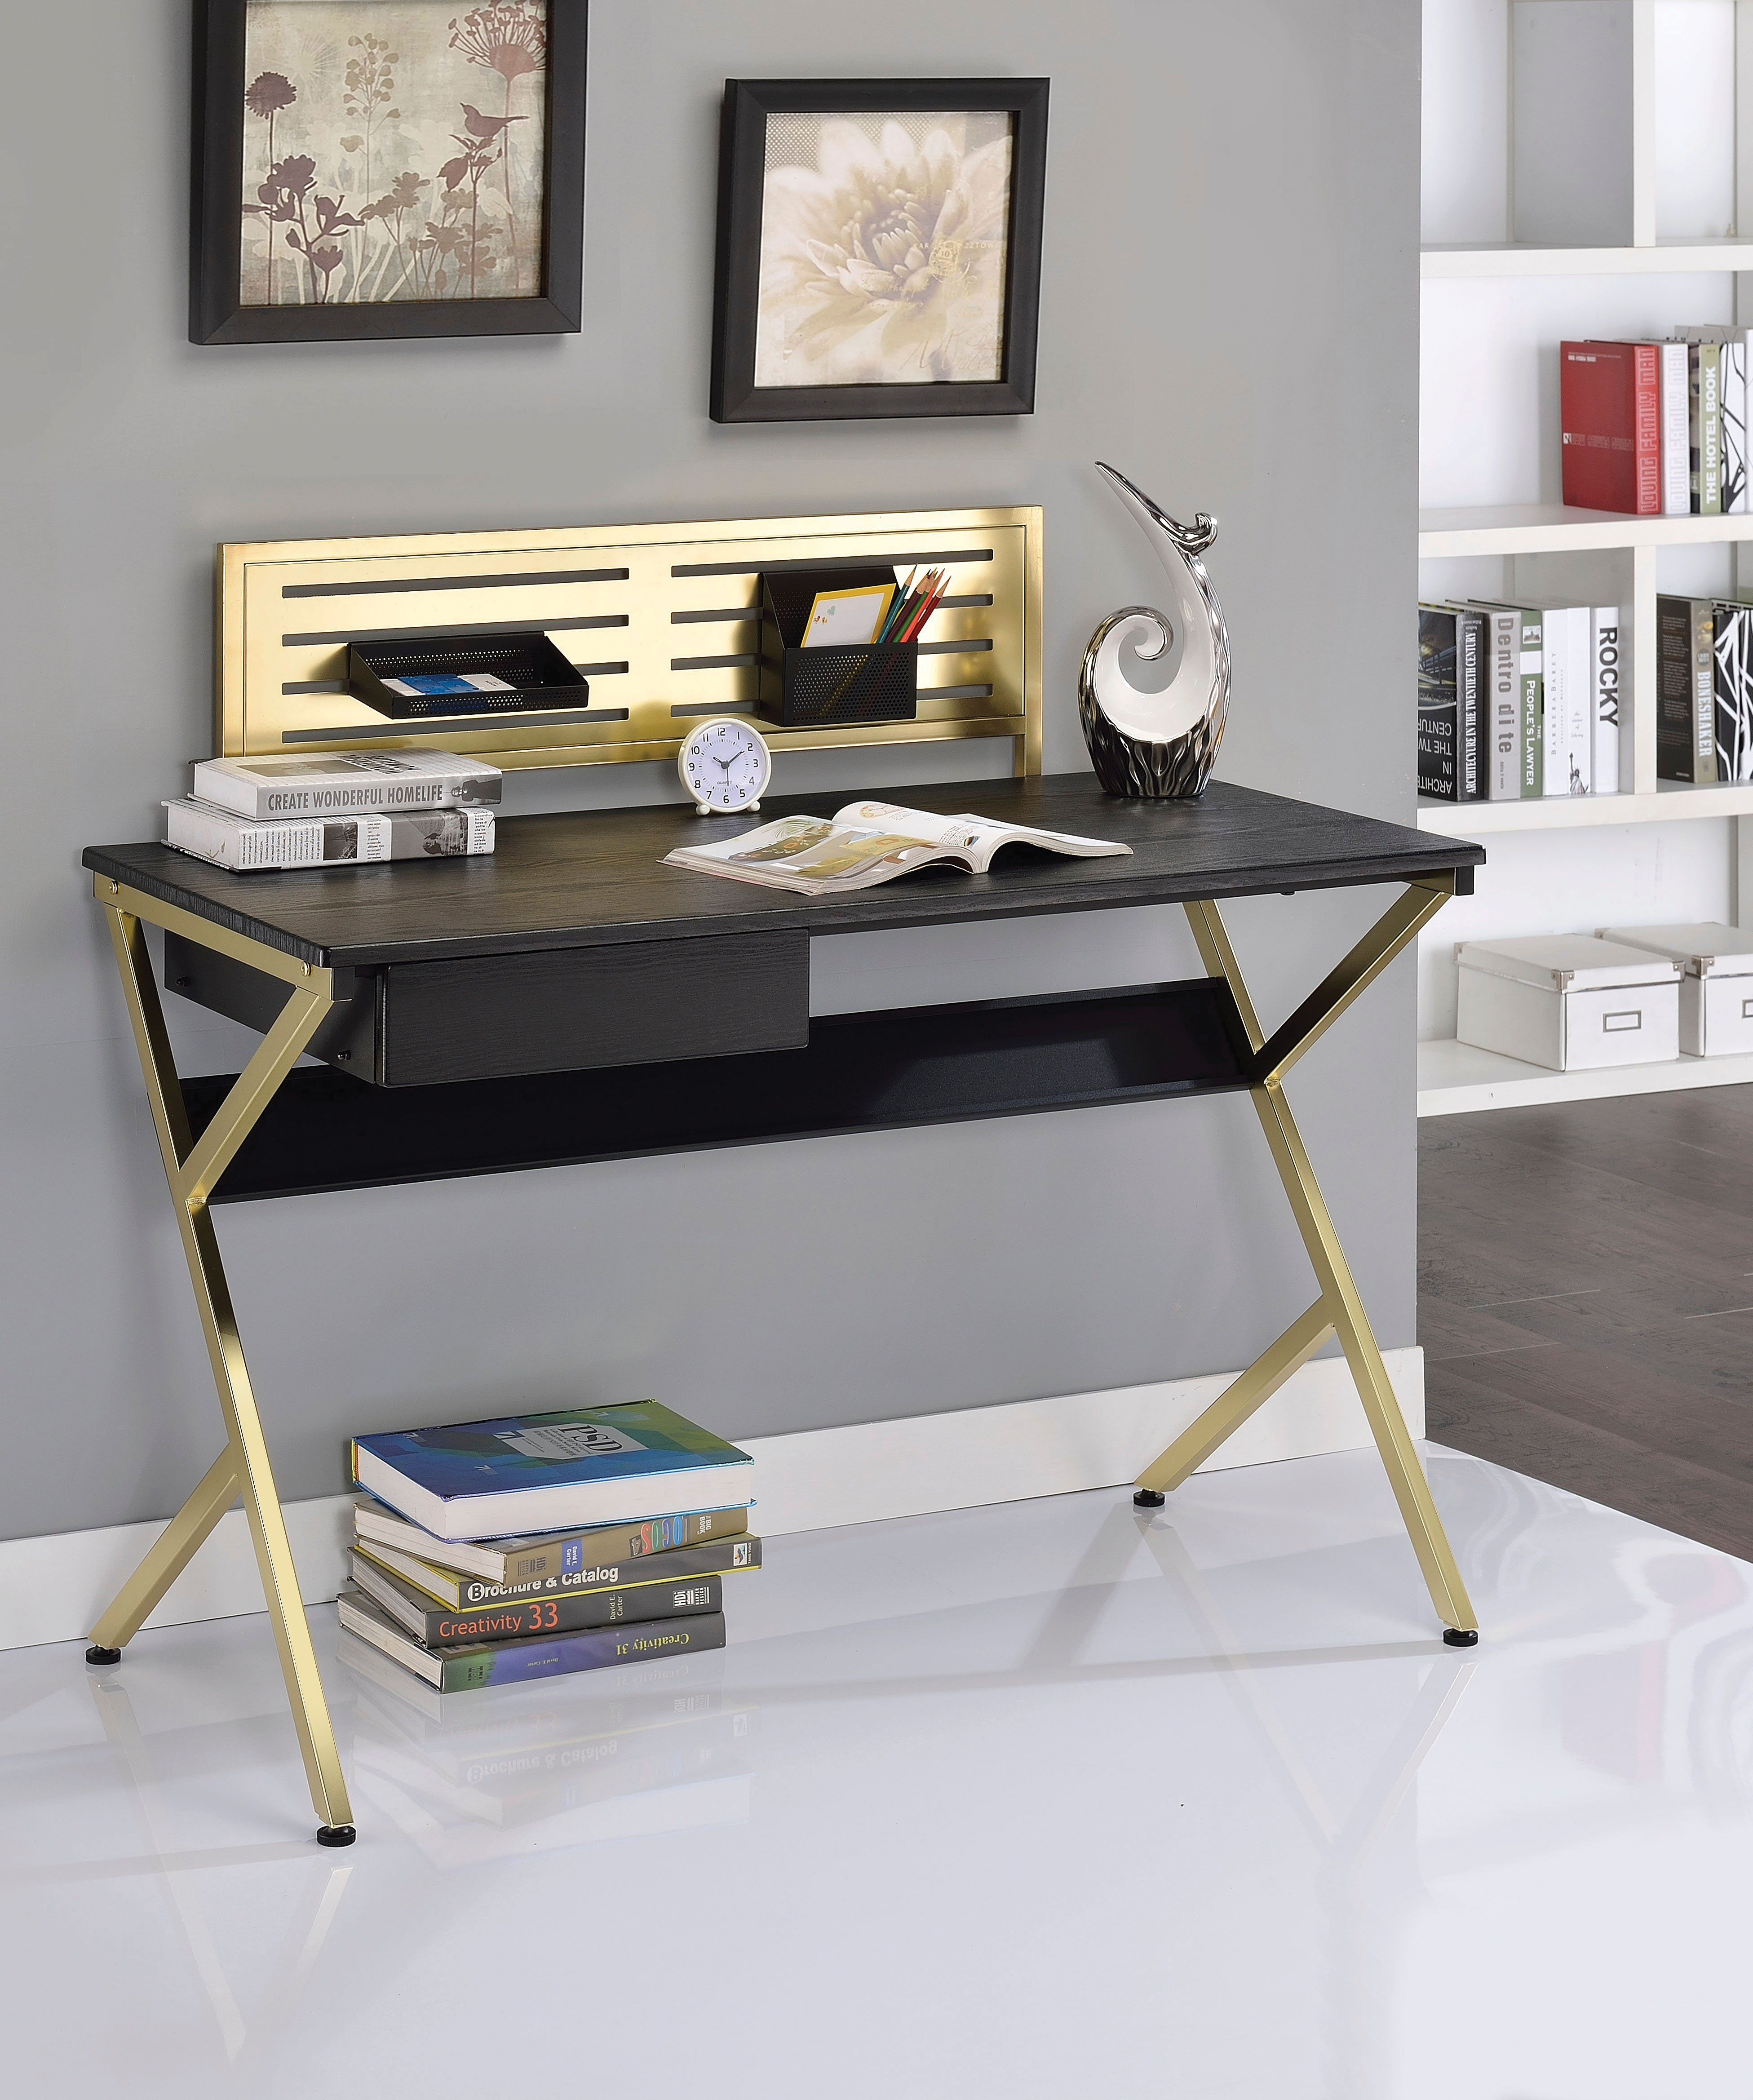 Free Home Interiordecorating Ideas: Black And Gold Bolles Writing Desk